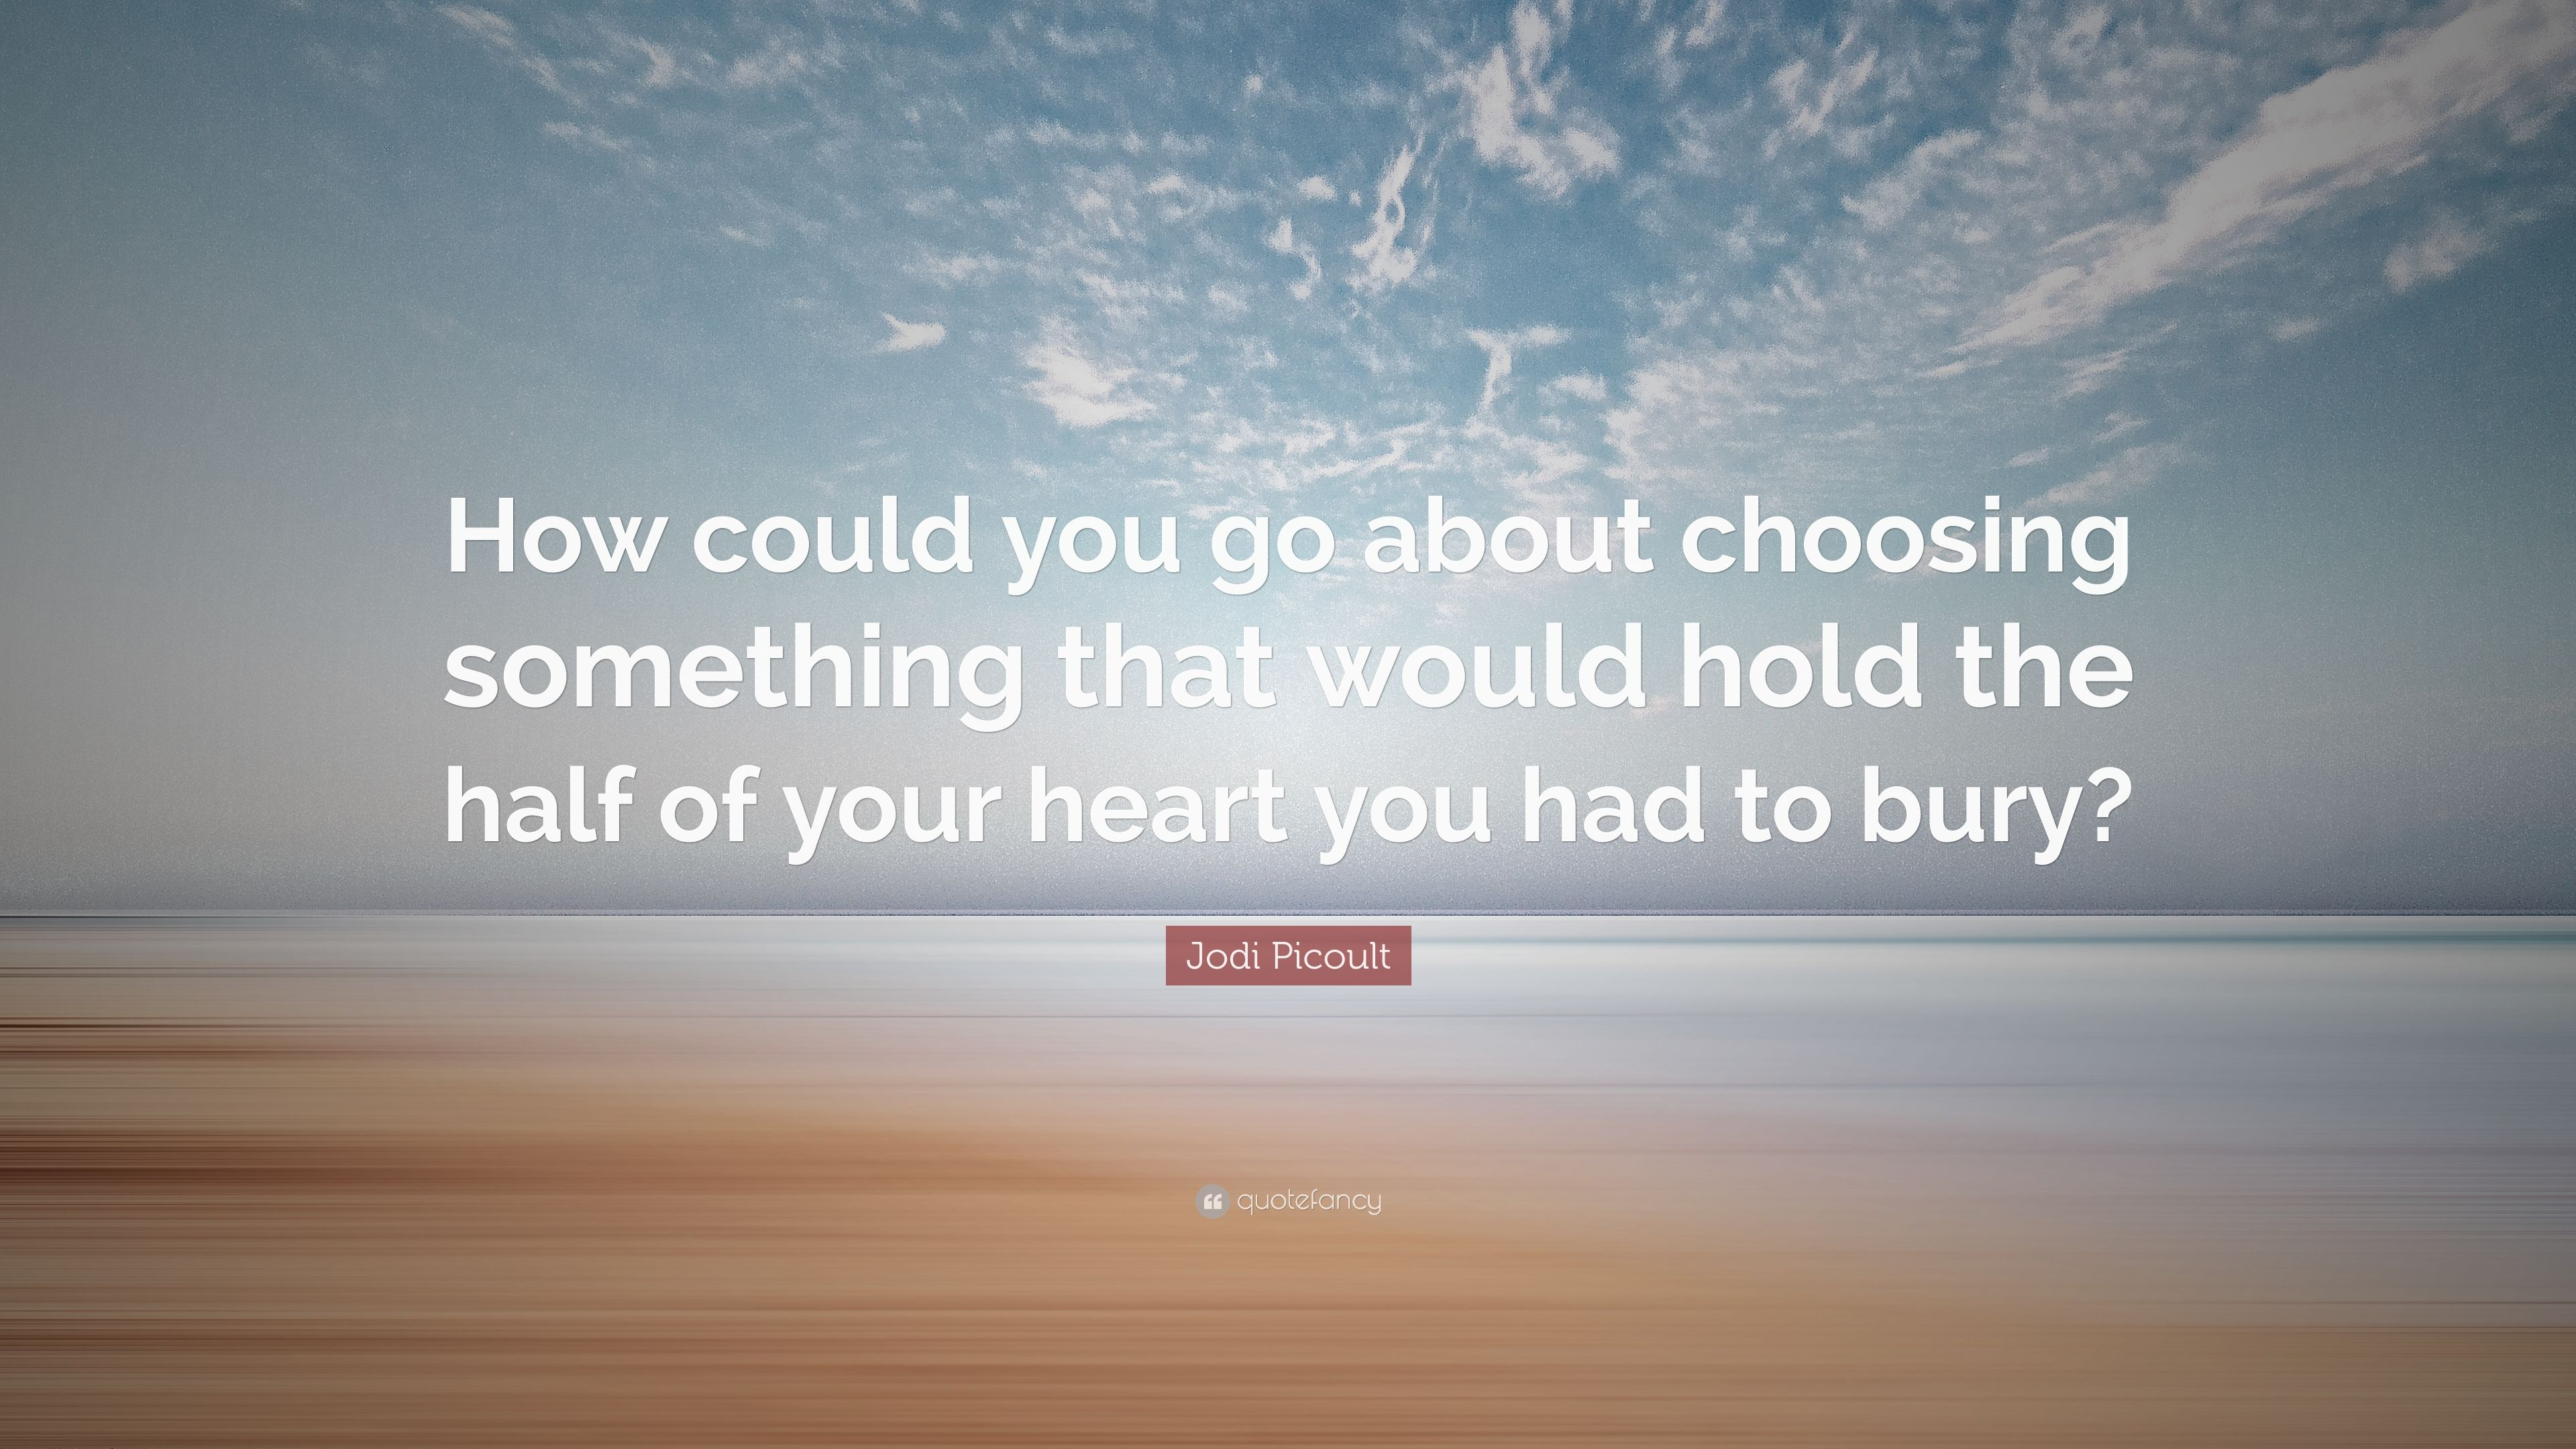 How could you go about choosing something that would hold the half of  your heart you had to bury? Jody Picoult